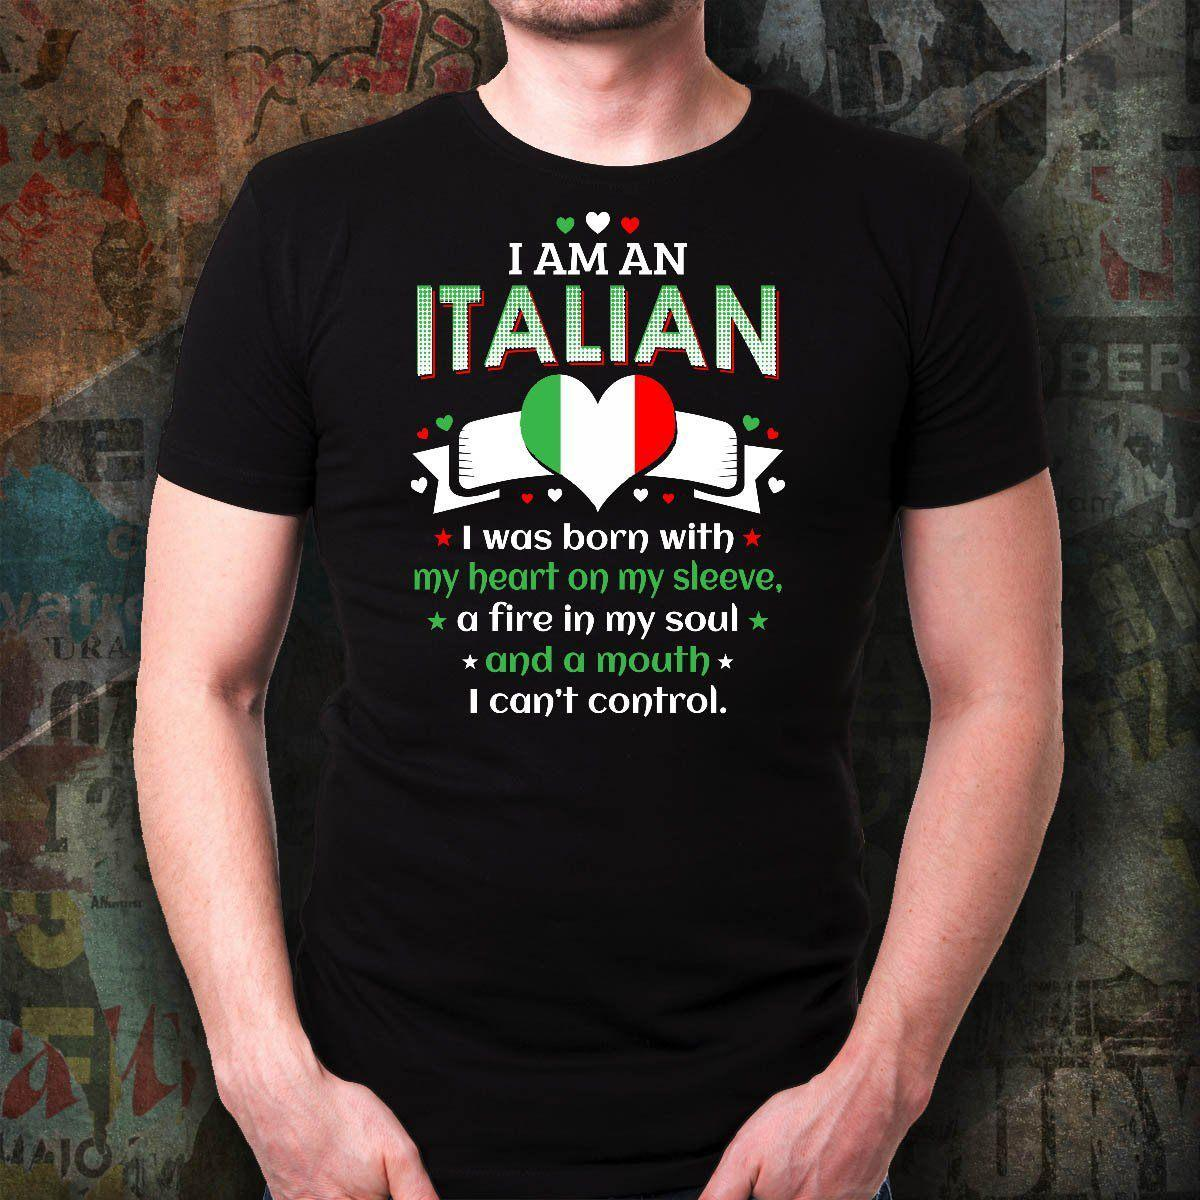 Are You An Italian? - Special Printing!